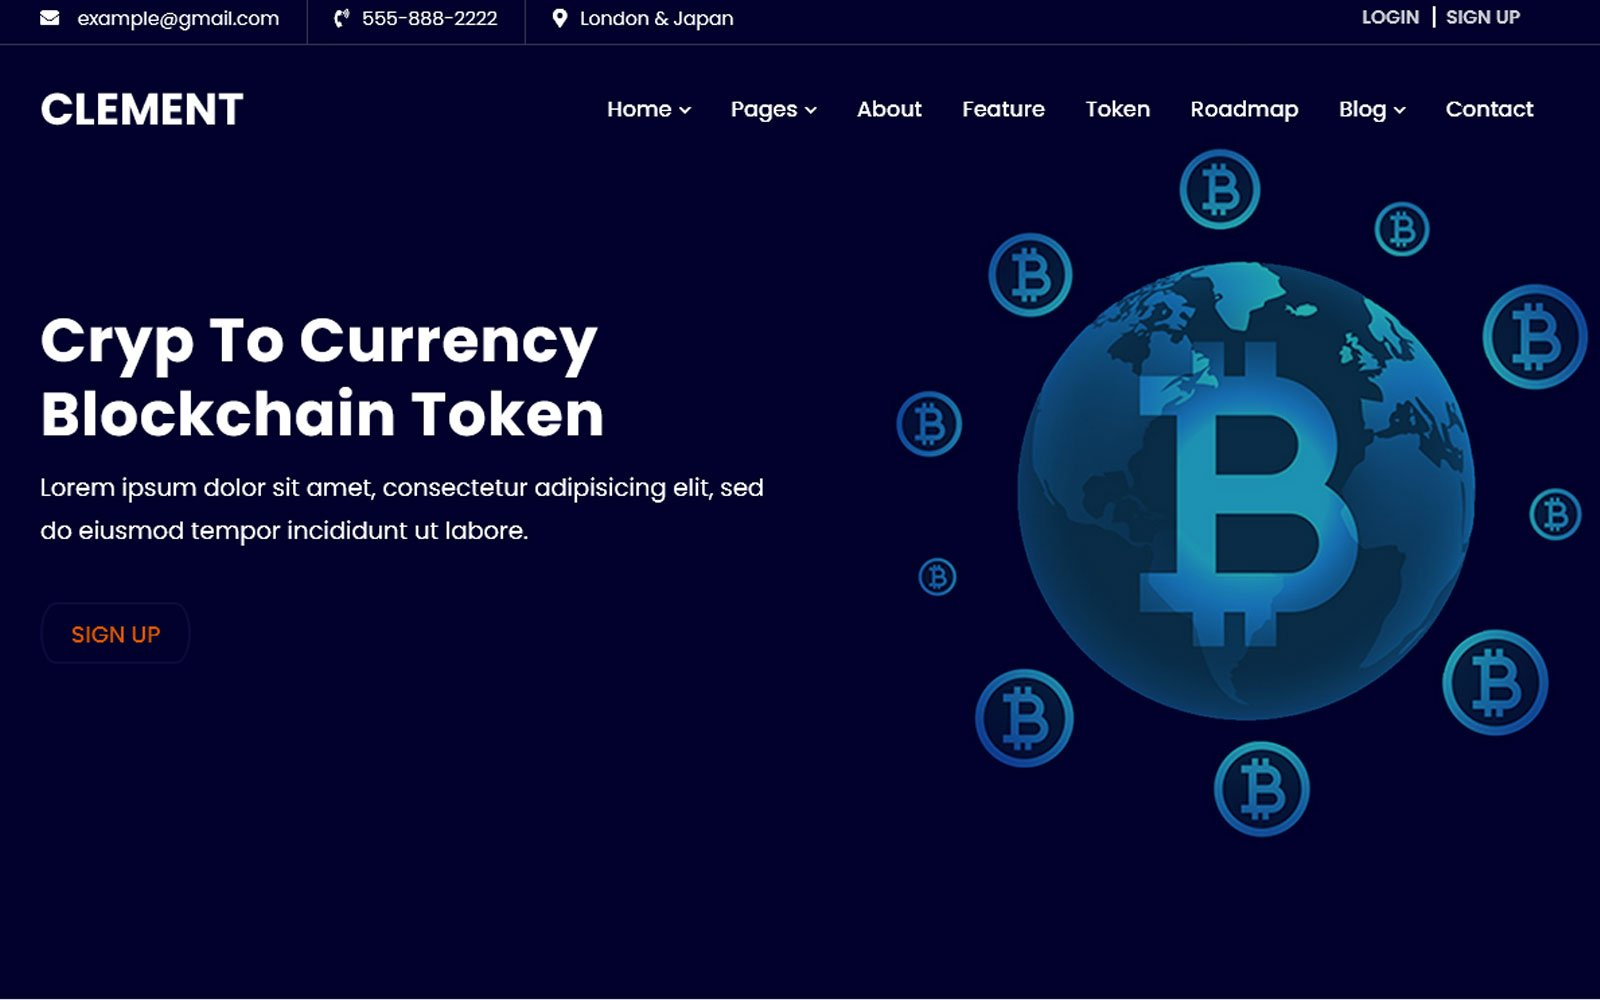 Clement -ICO Bitcoin & Cryptocurrency webbplats mall